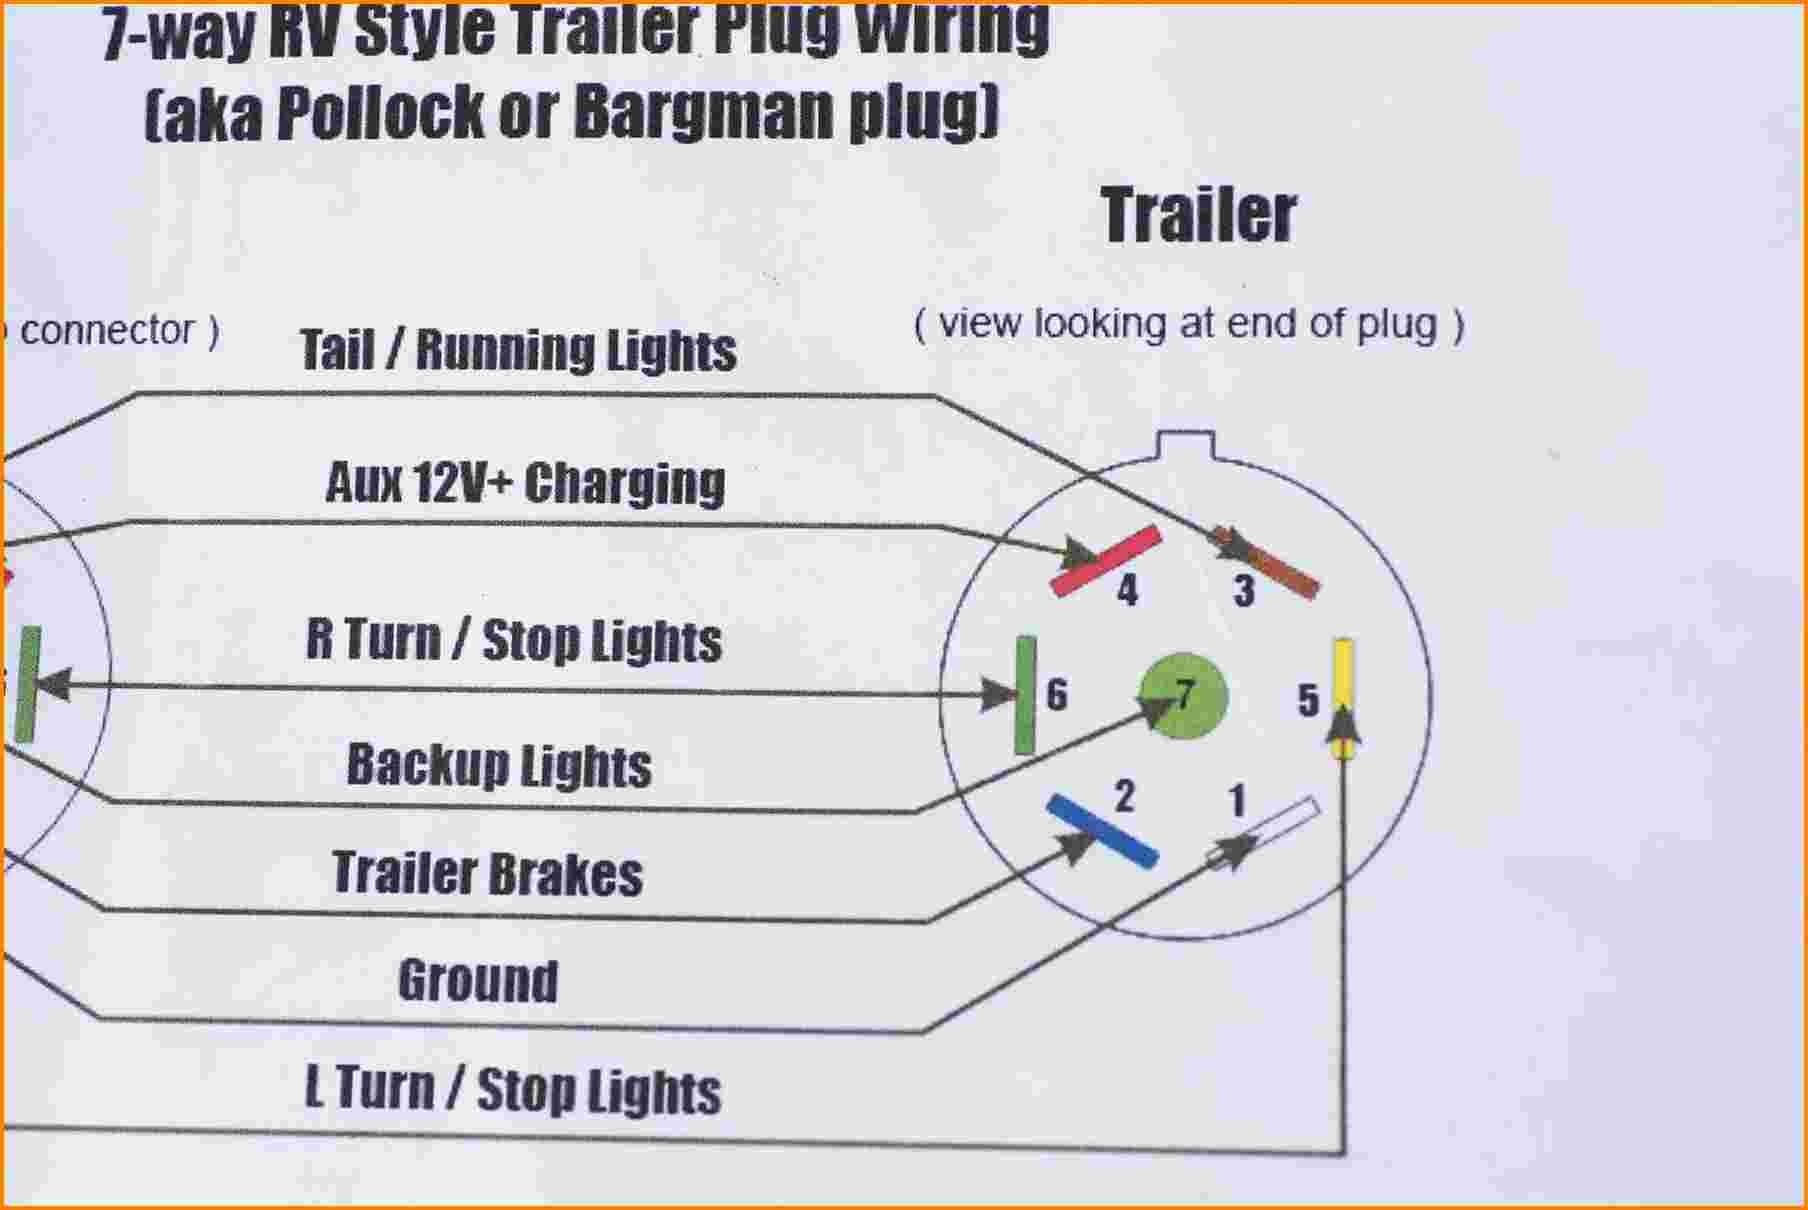 Pollak Trailer Plug Wiring Diagram 10 7 Pin Trailer Wiring Harness Motor within Connector Of Pollak Trailer Plug Wiring Diagram